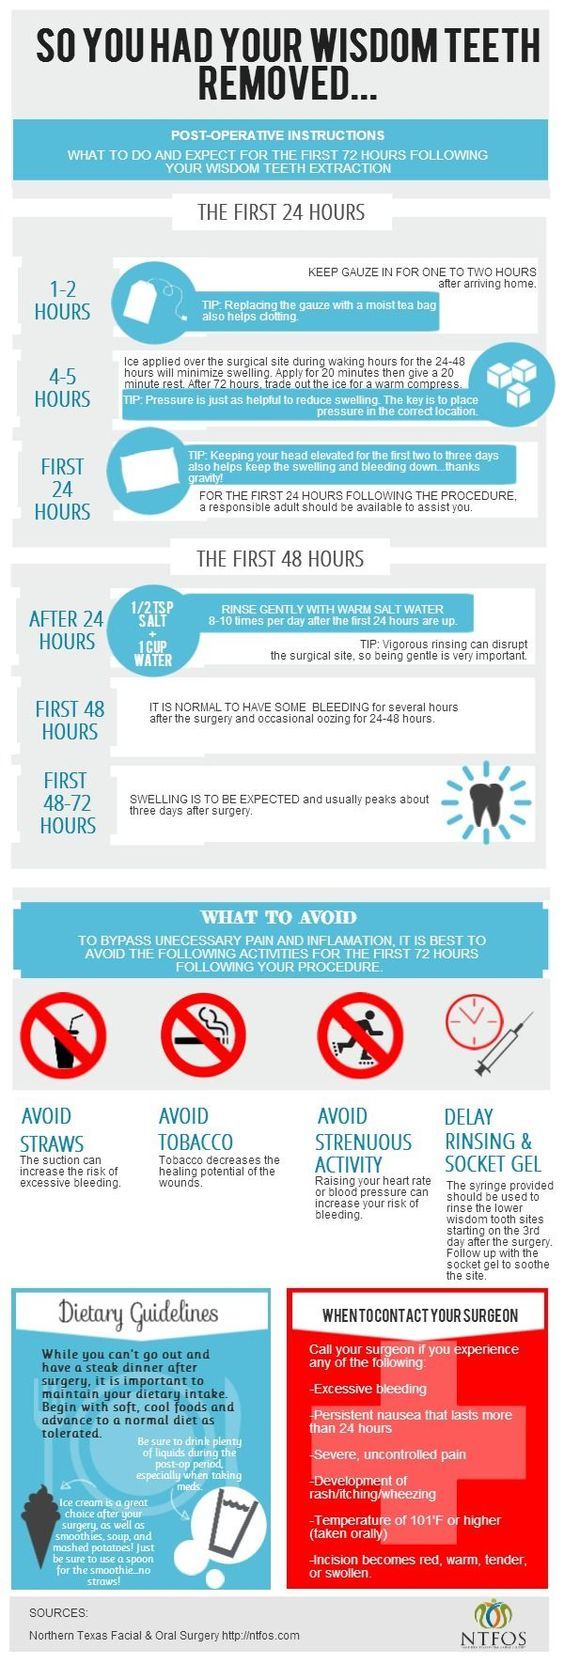 Do you have to have your wisdom teeth removed? This infographic will walk you through what to expect in the first 72 hours after wisdom teeth removal.